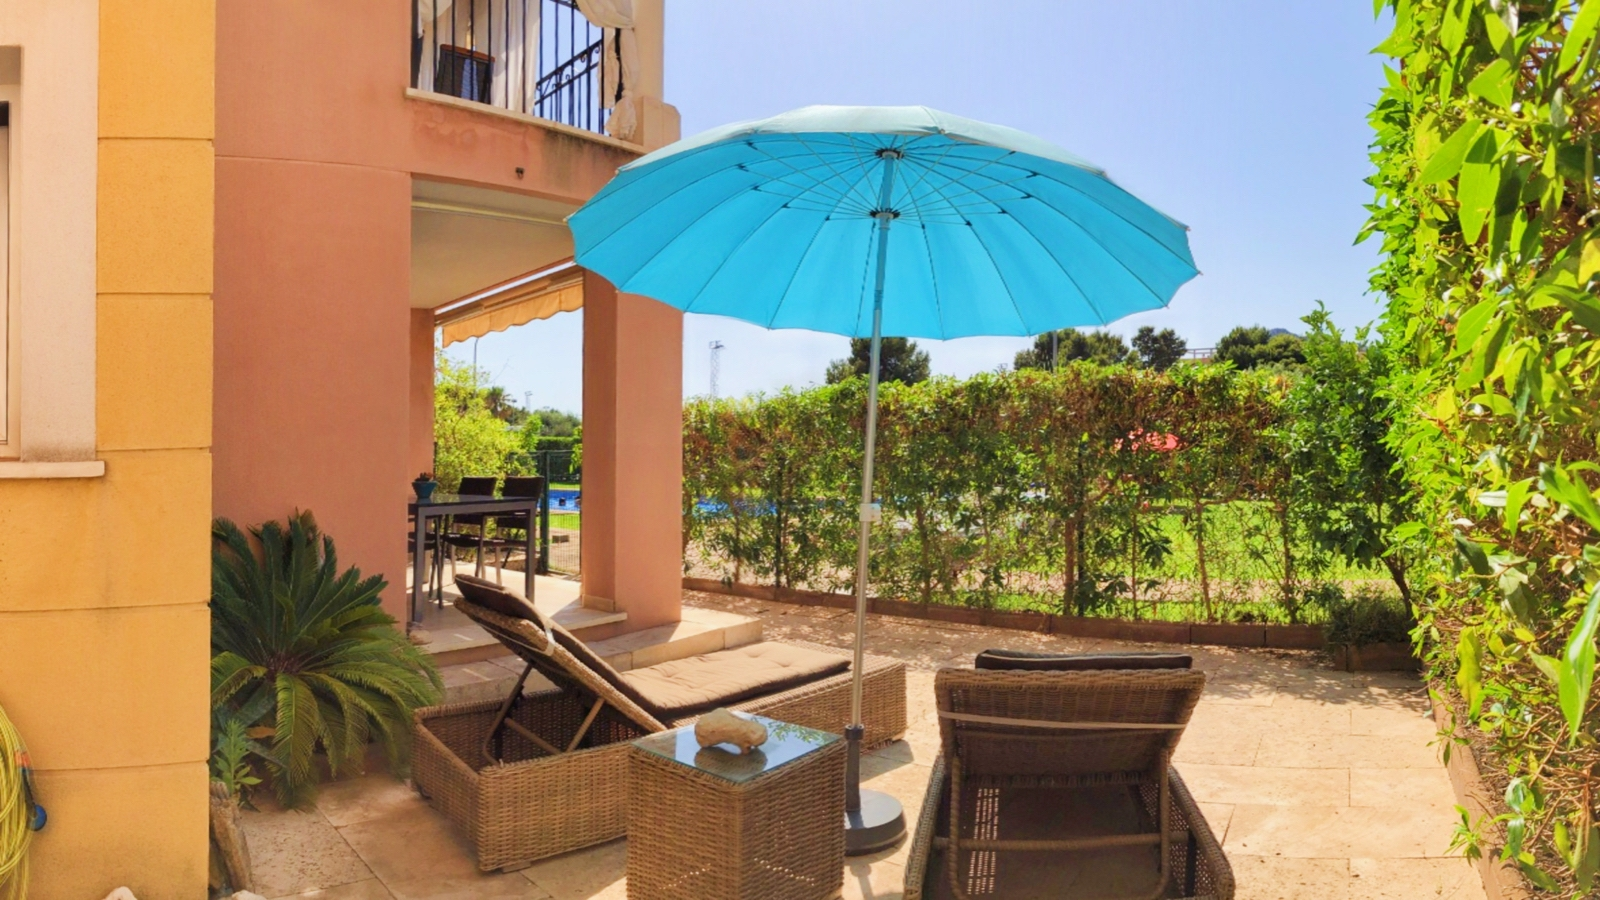 Garden apartment close to beach for sale in Cala Millor, Mallorca